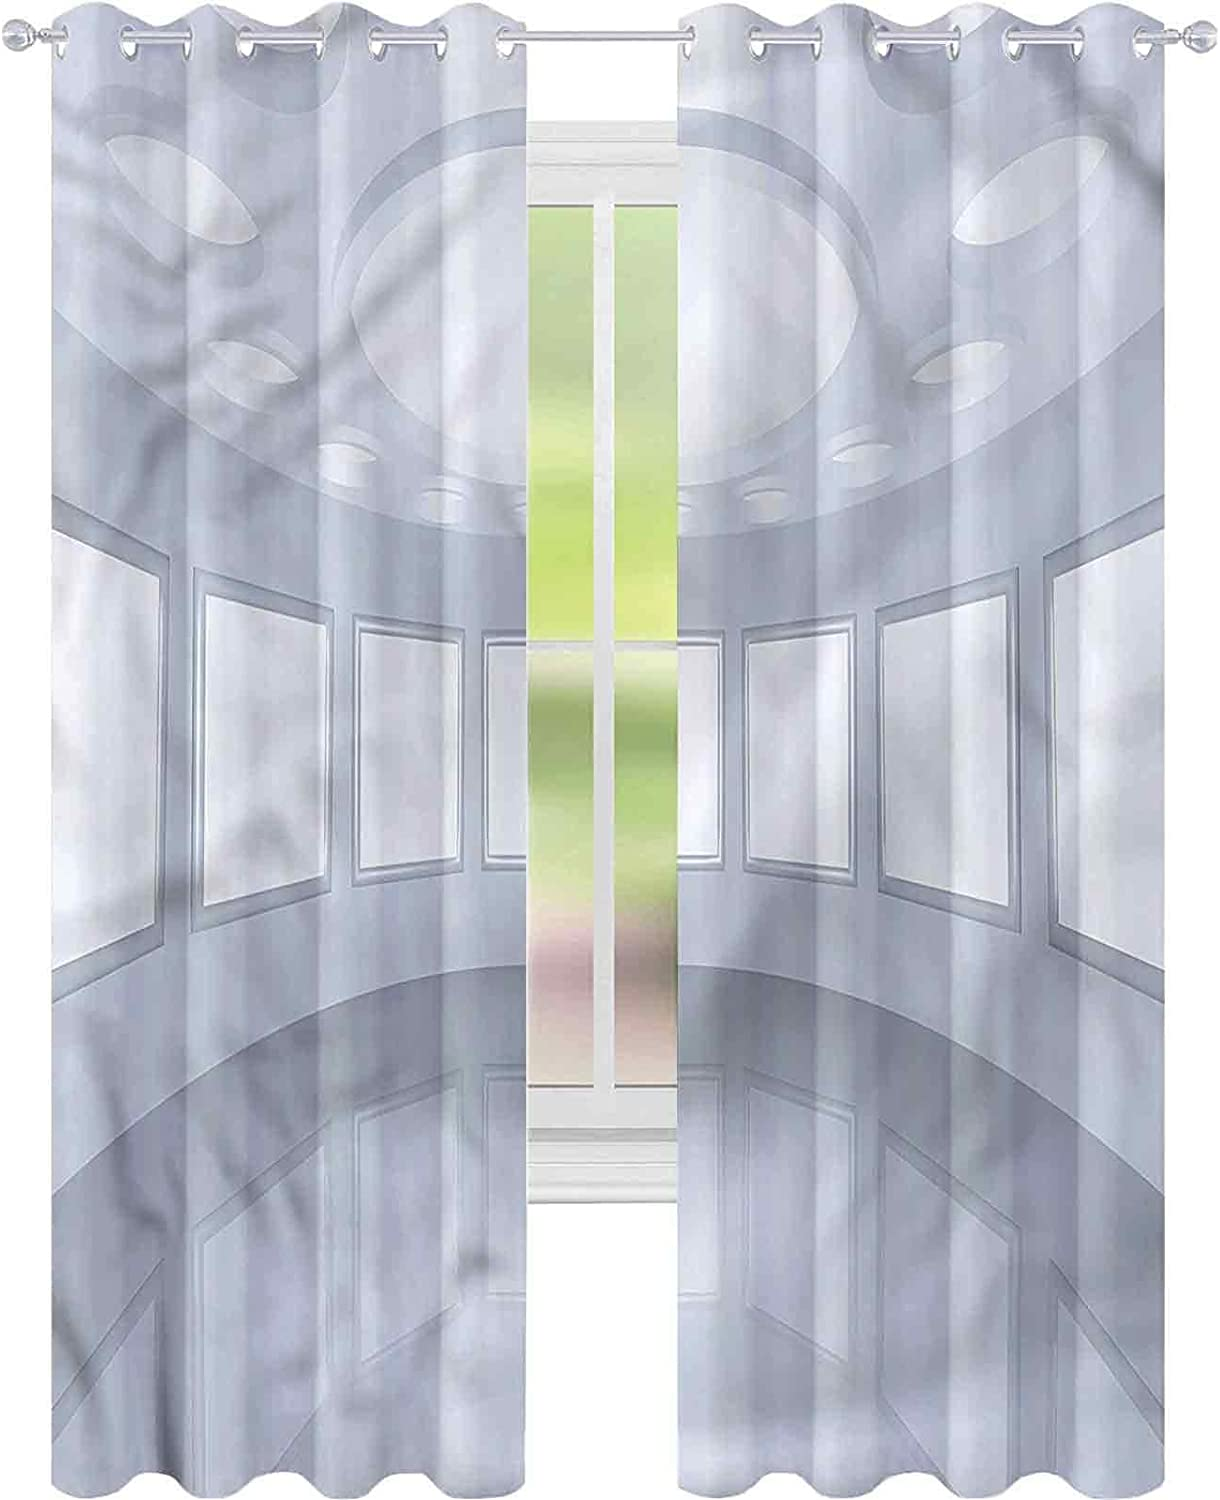 Sales Ultra-Cheap Deals Blackout Curtains Modern Picture Gallery 3D W52 Darke L72 x Room